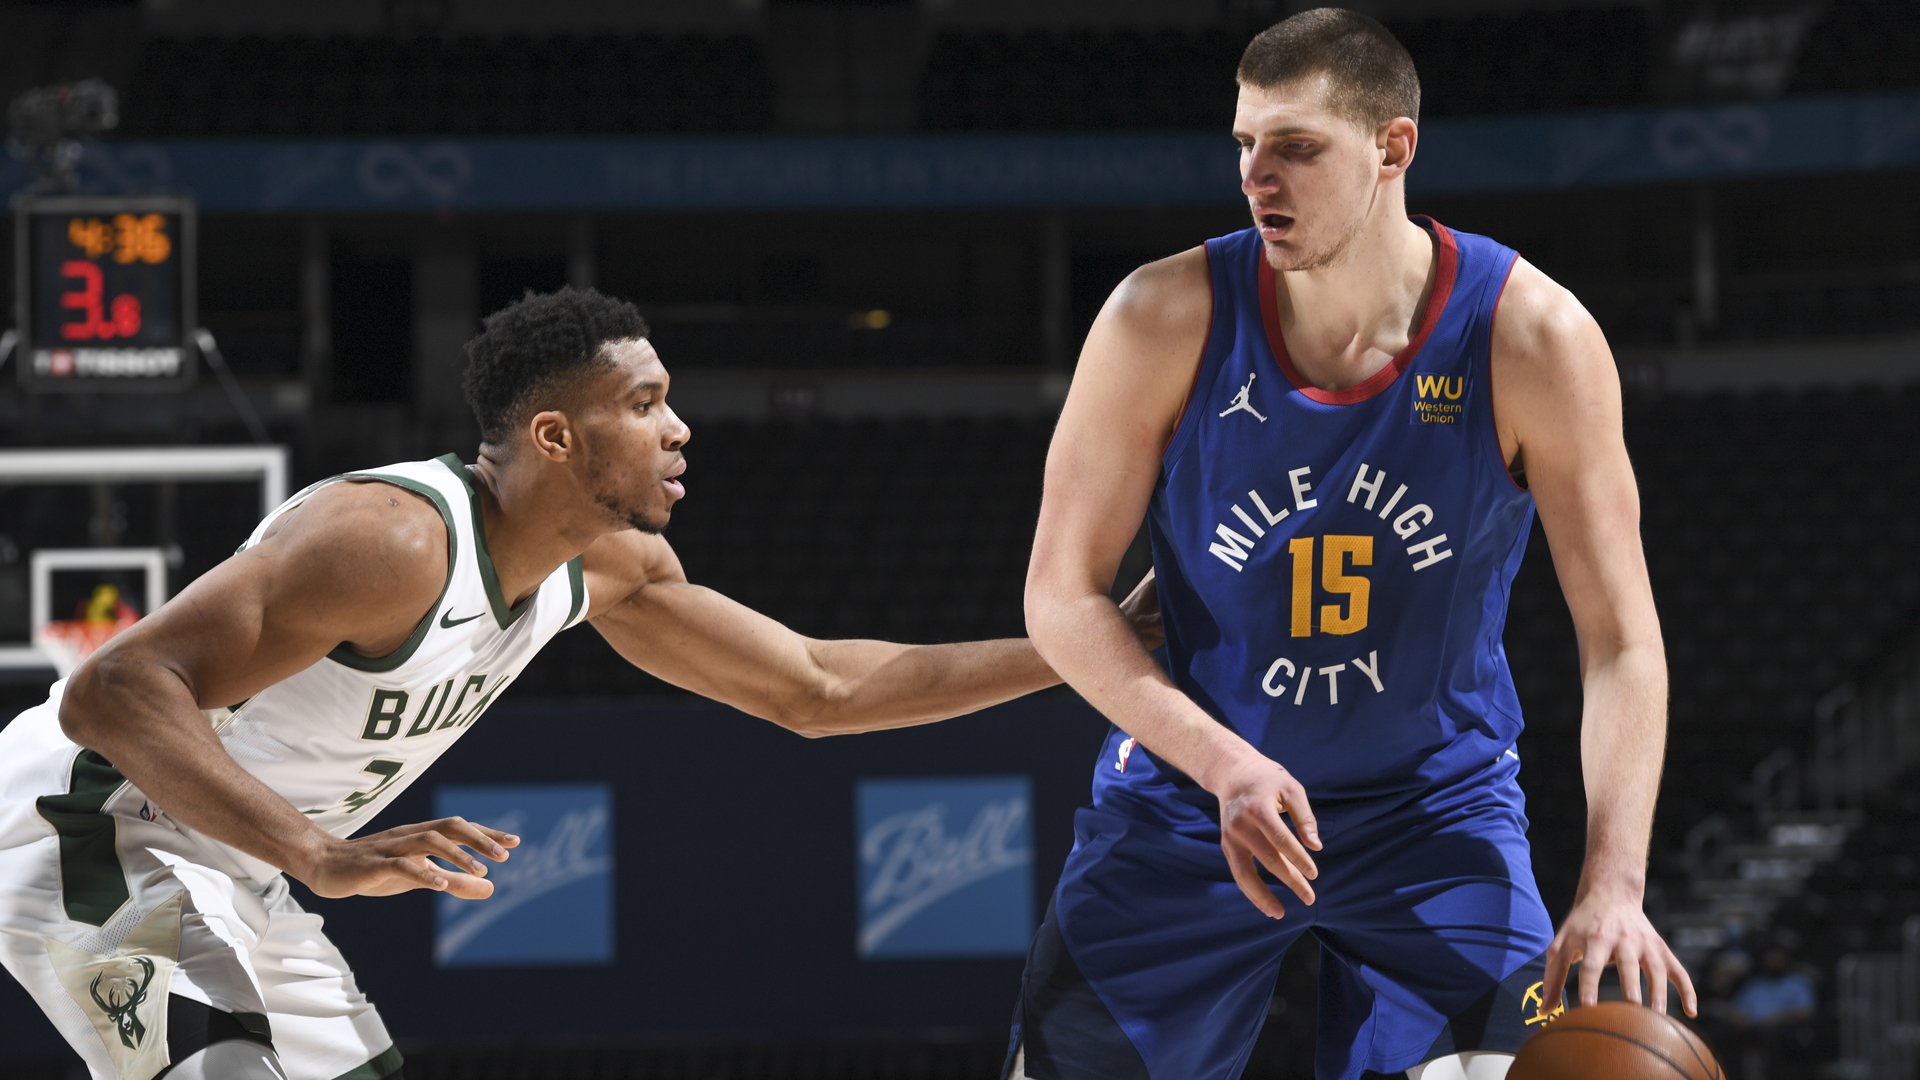 Game Rewind: Bucks 125 - Nuggets 112